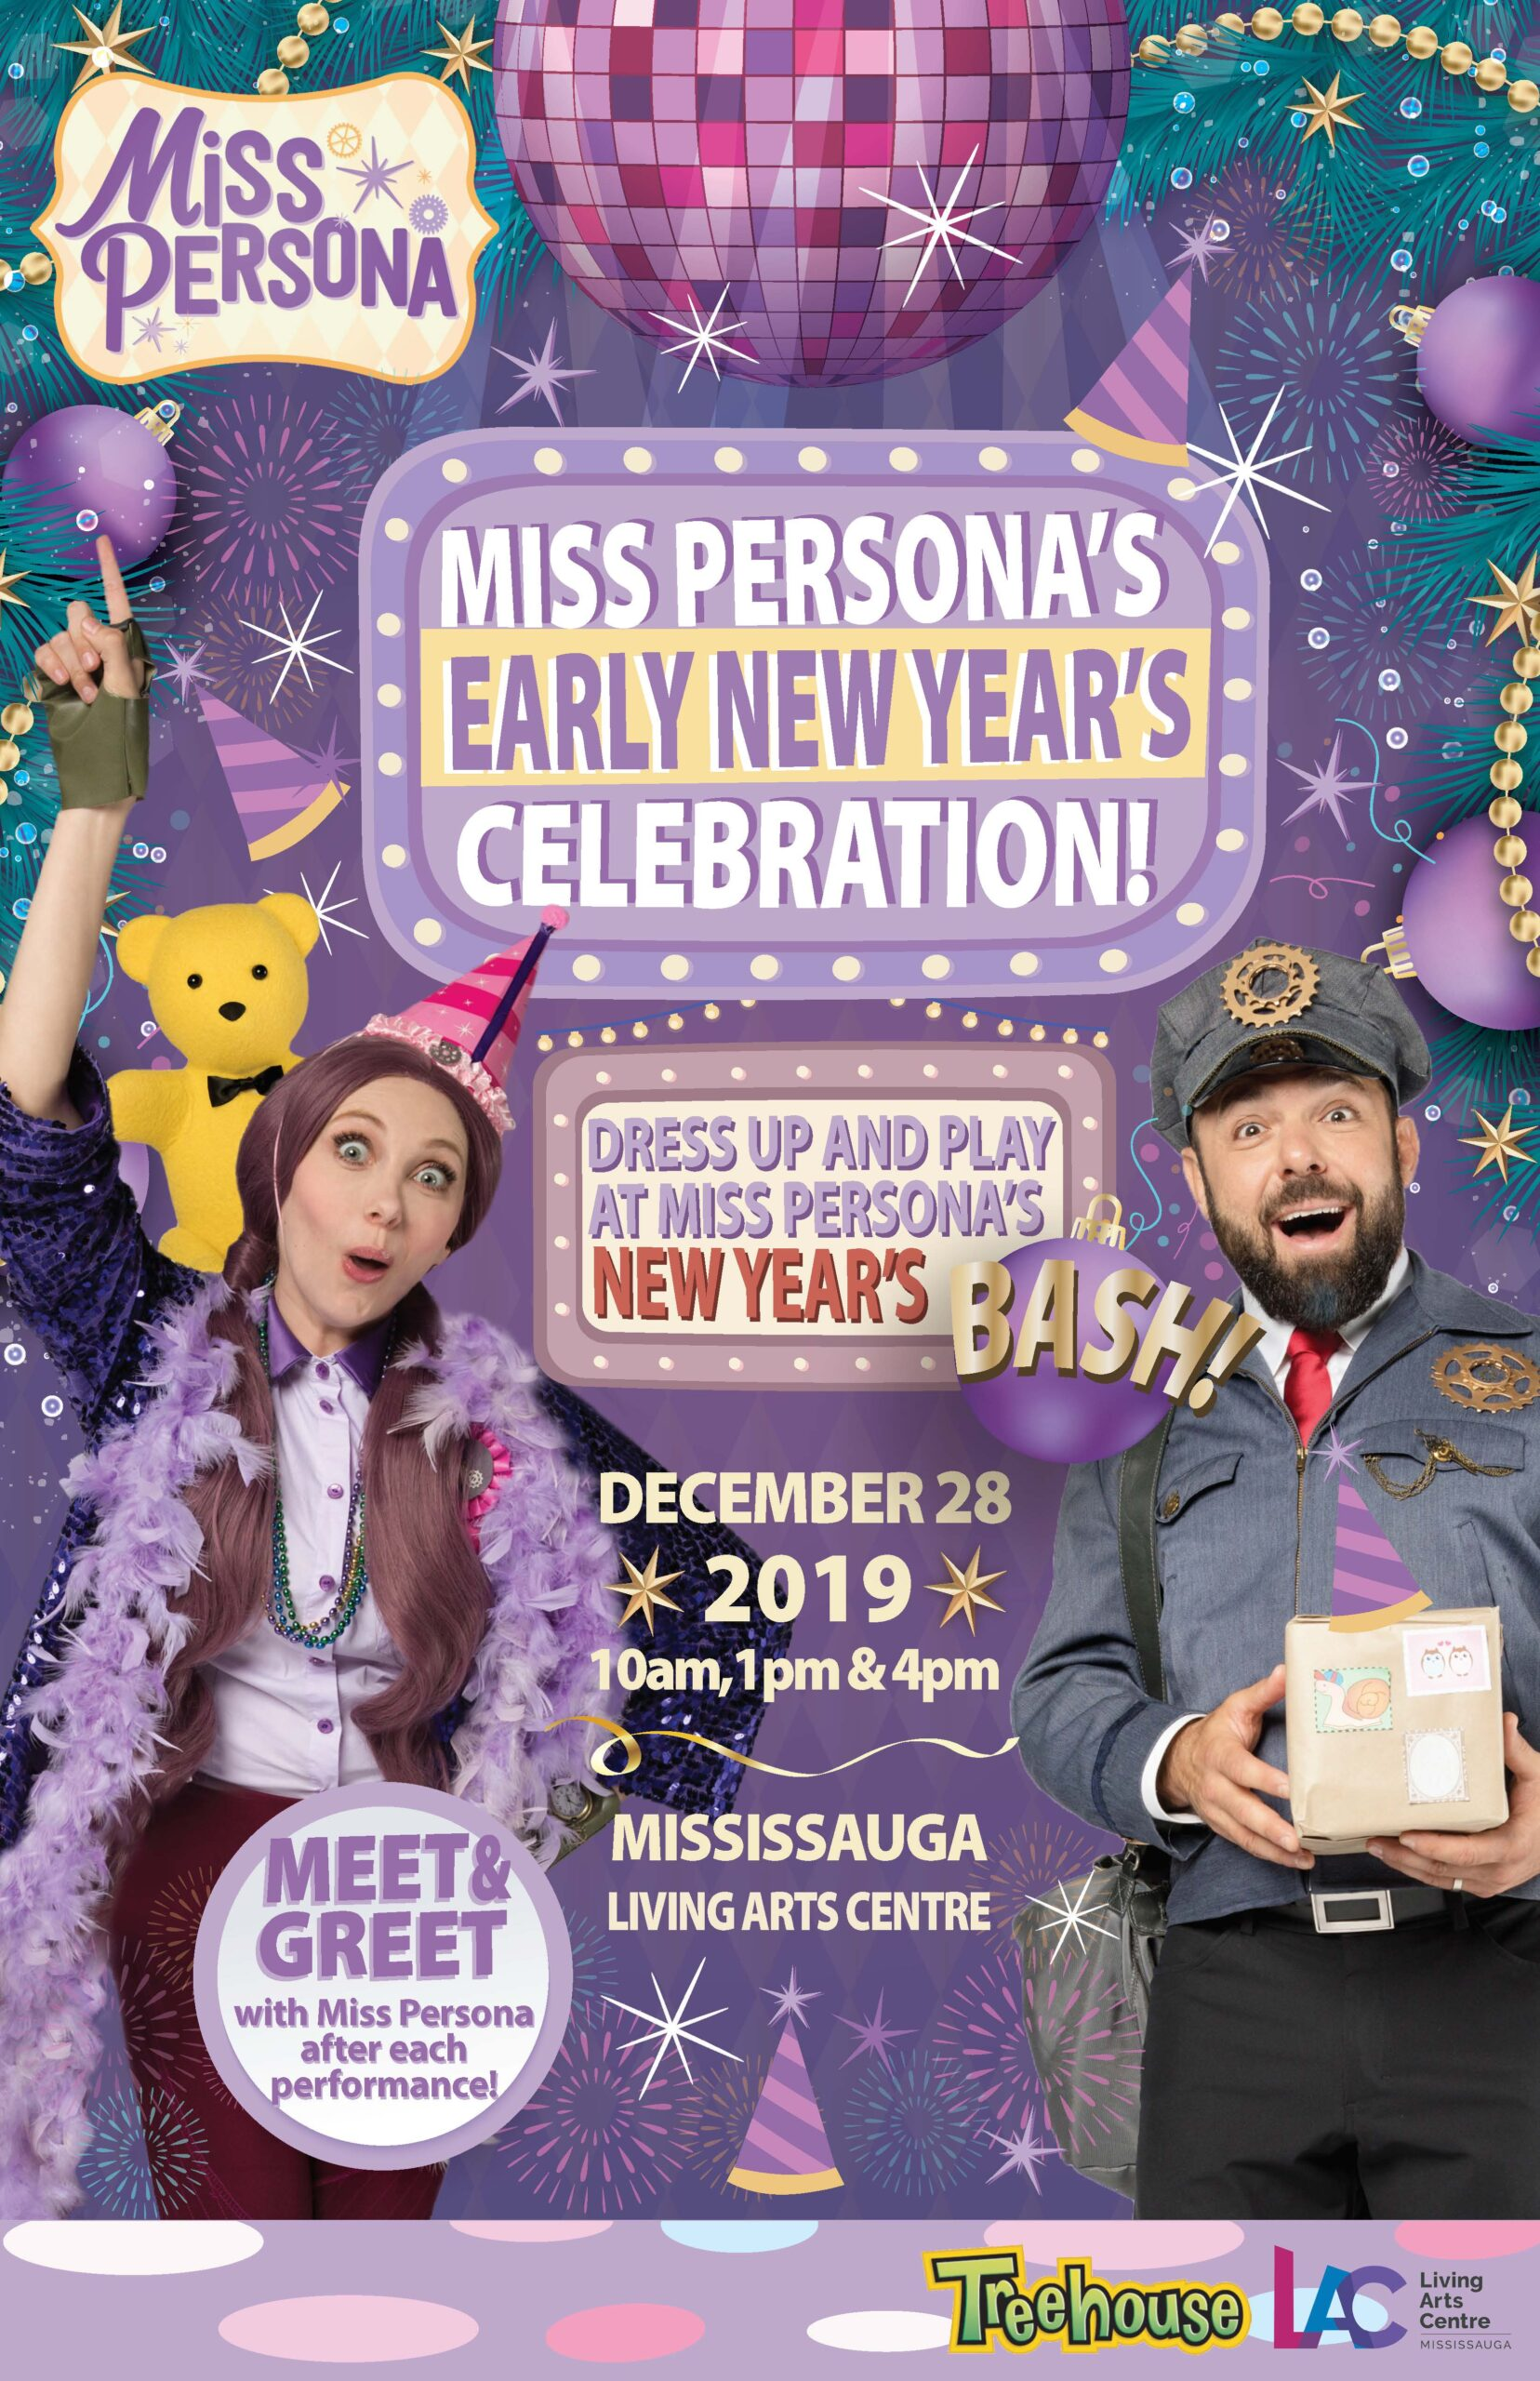 Win Tickets to Miss Persona's Early New Year's Celebration (Mississauga)